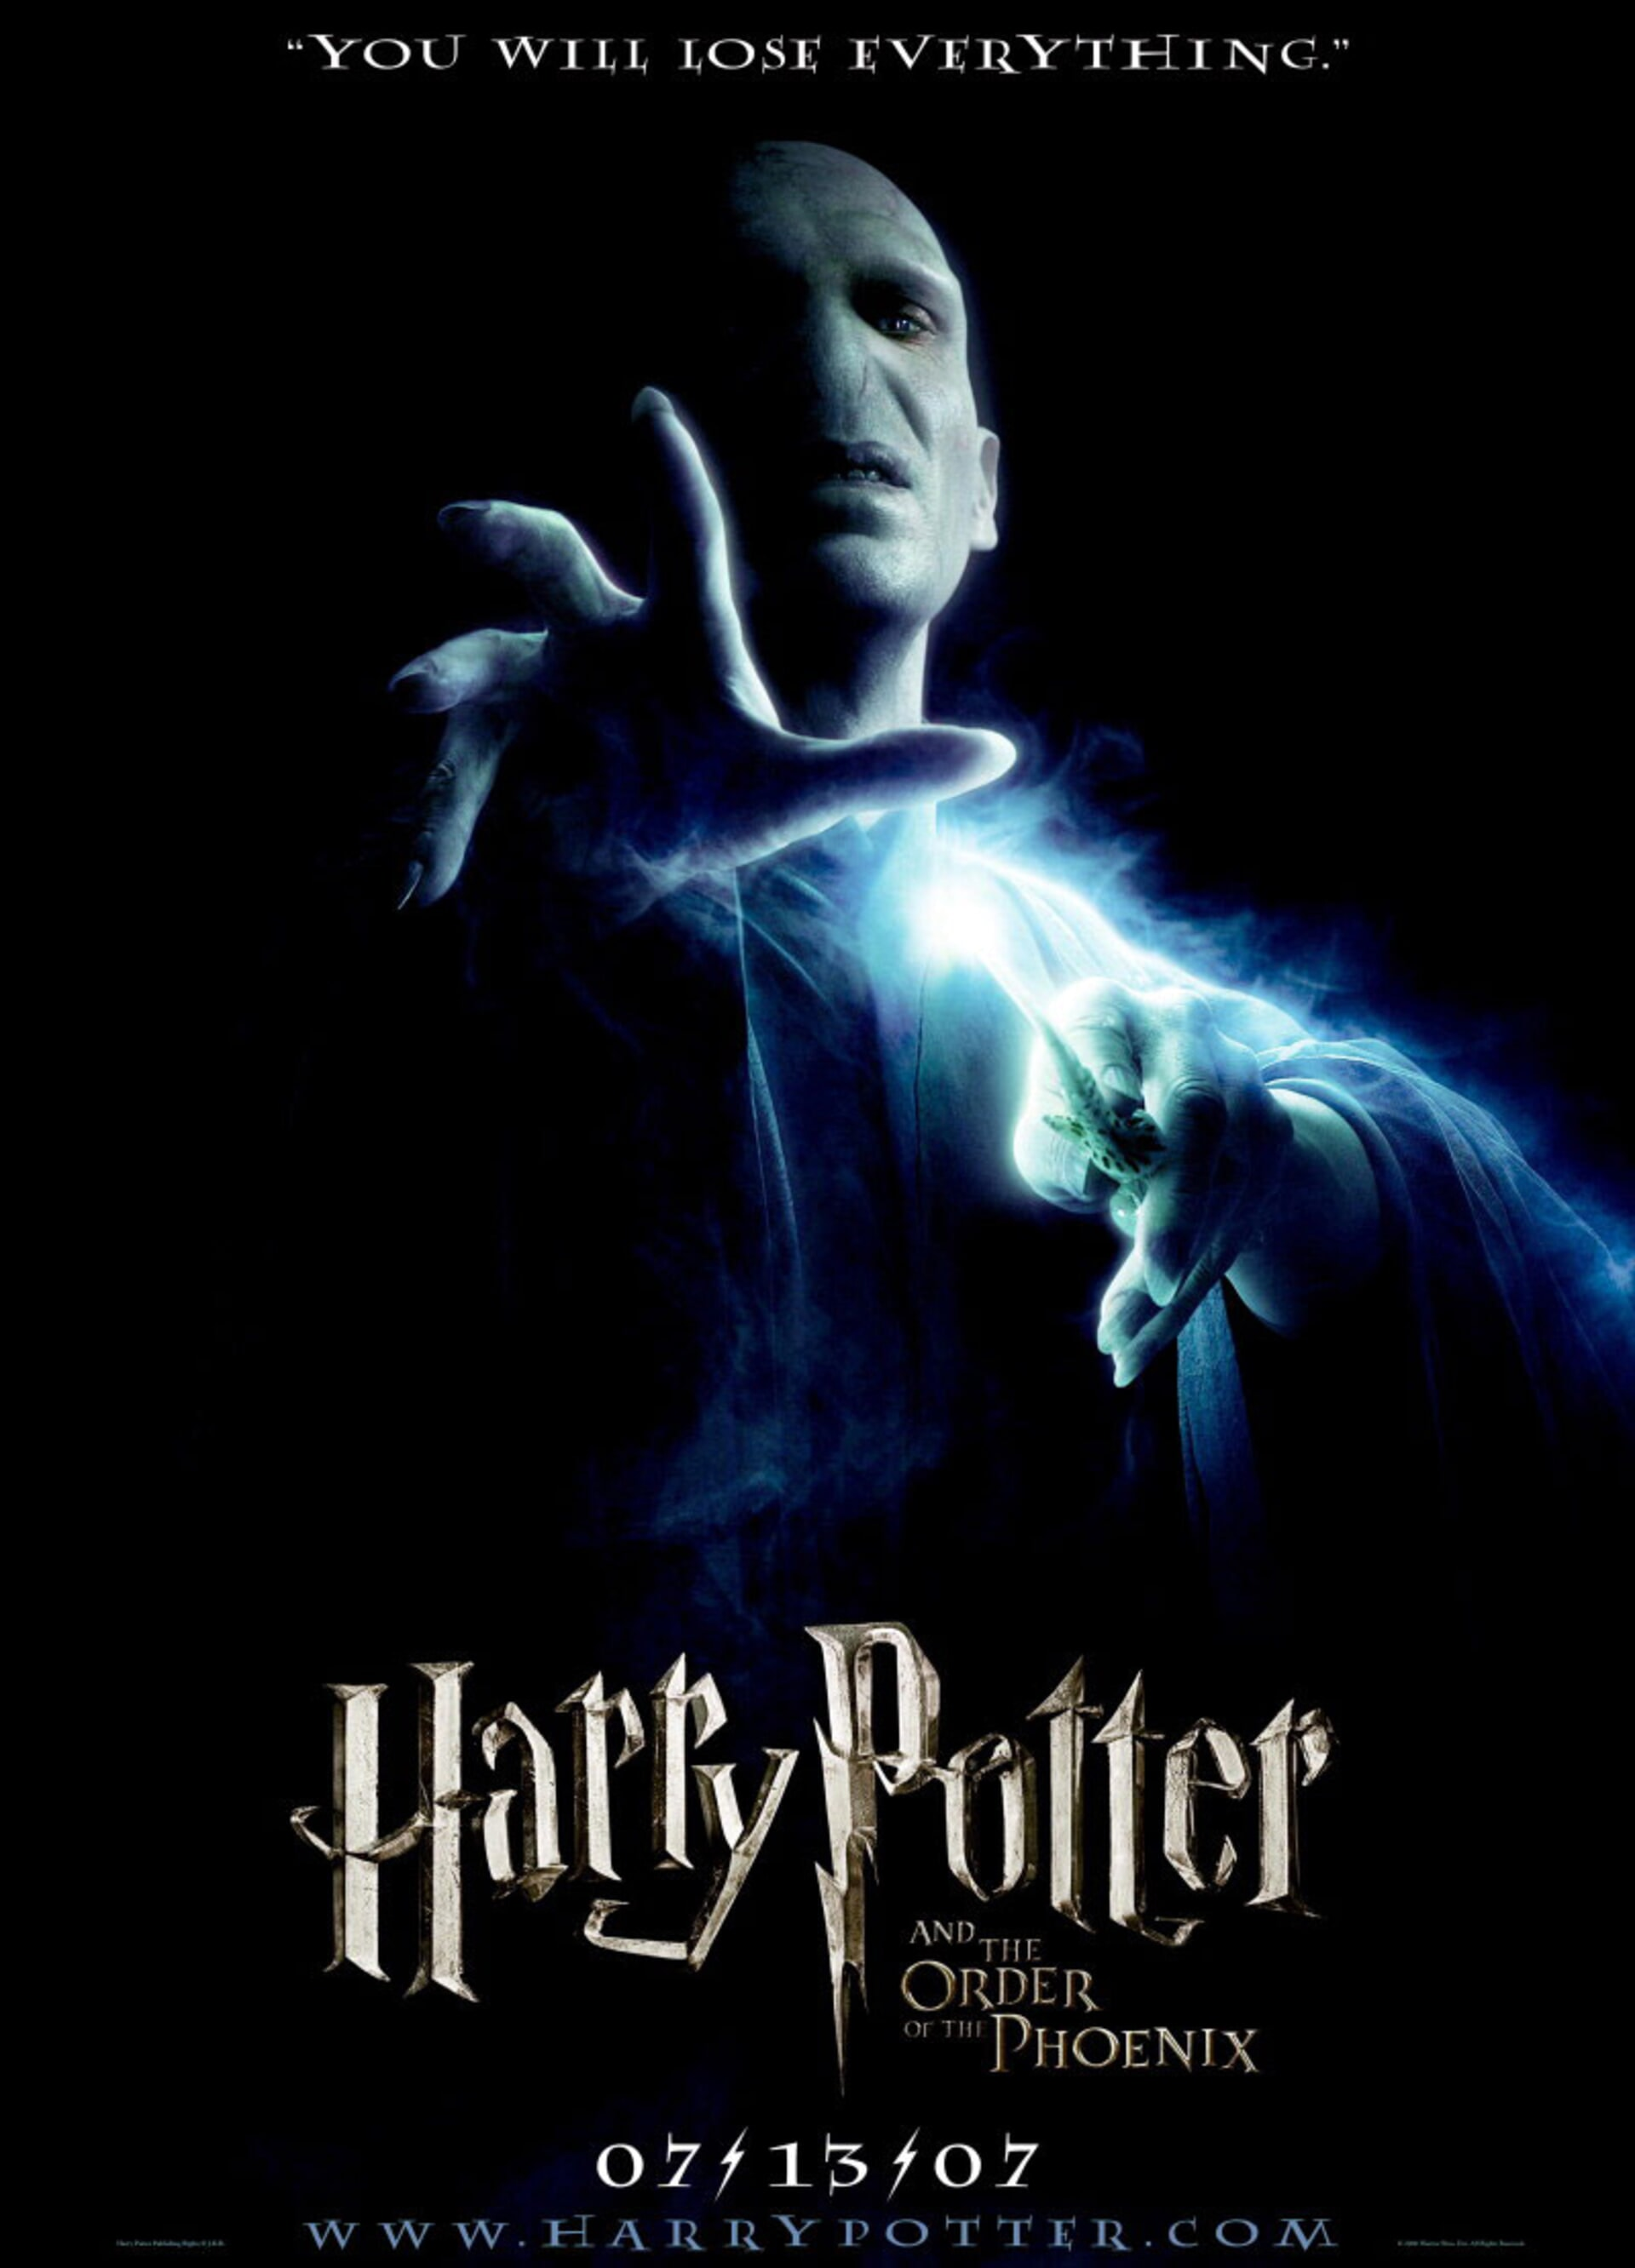 Harry Potter and the Order of the Phoenix - Poster 2